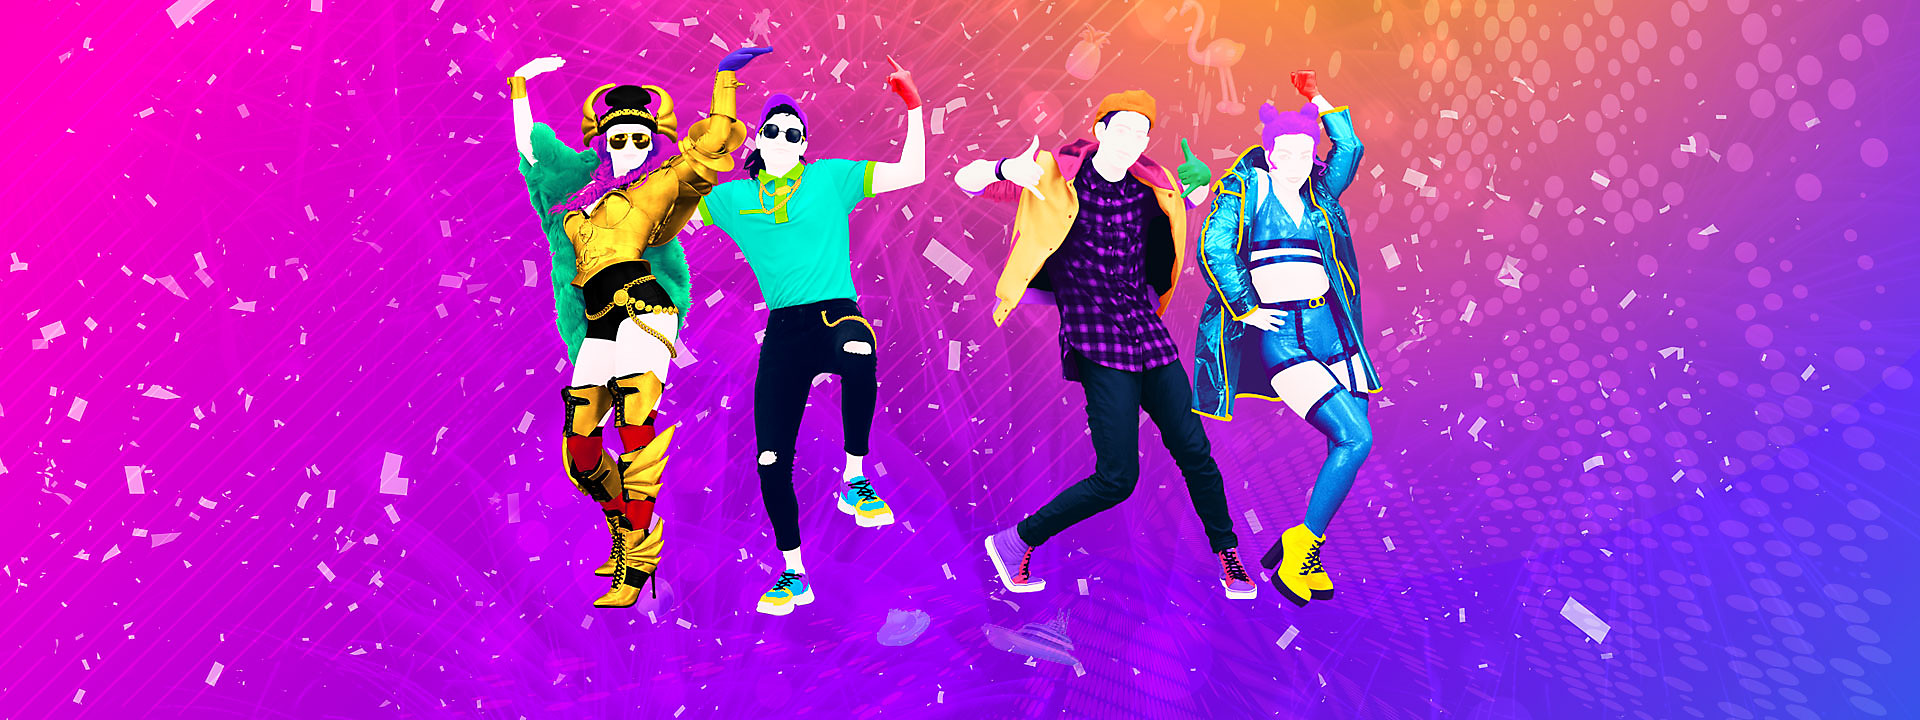 Just Dance 2020 hero banner